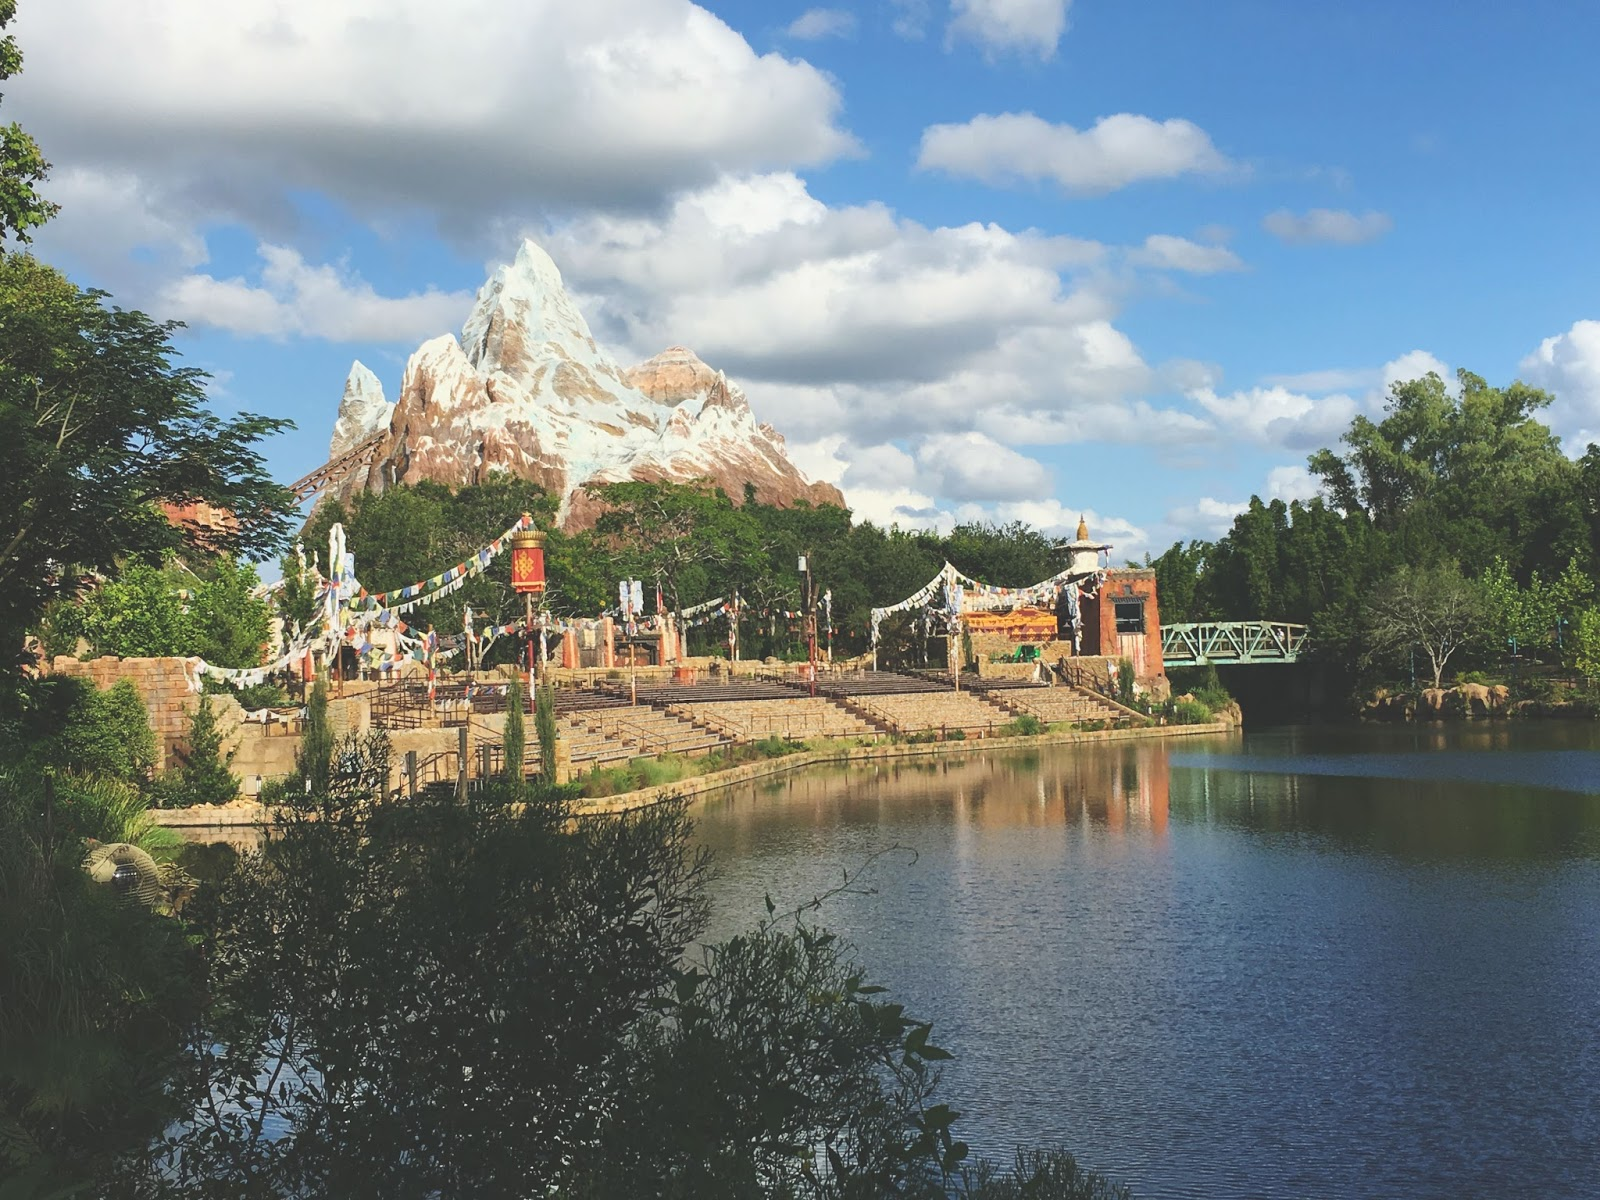 Expedition Everest at Animal Kingdom in Disney World, Florida